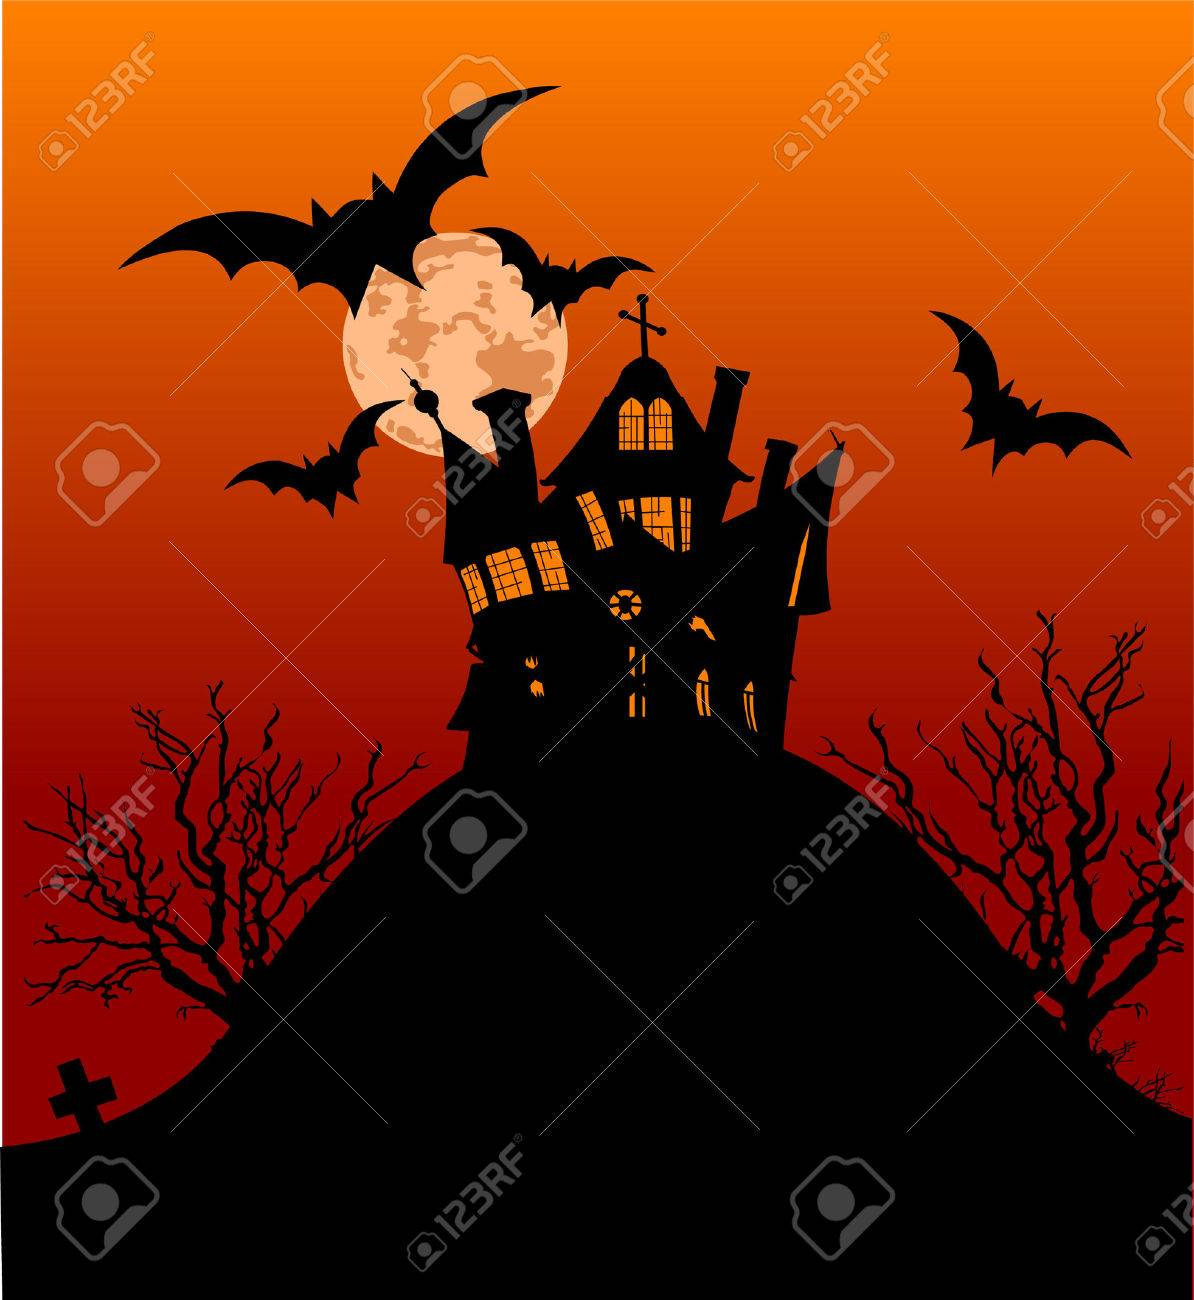 Horizontal Halloween flyer with a haunted house Stock Vector - 5739947